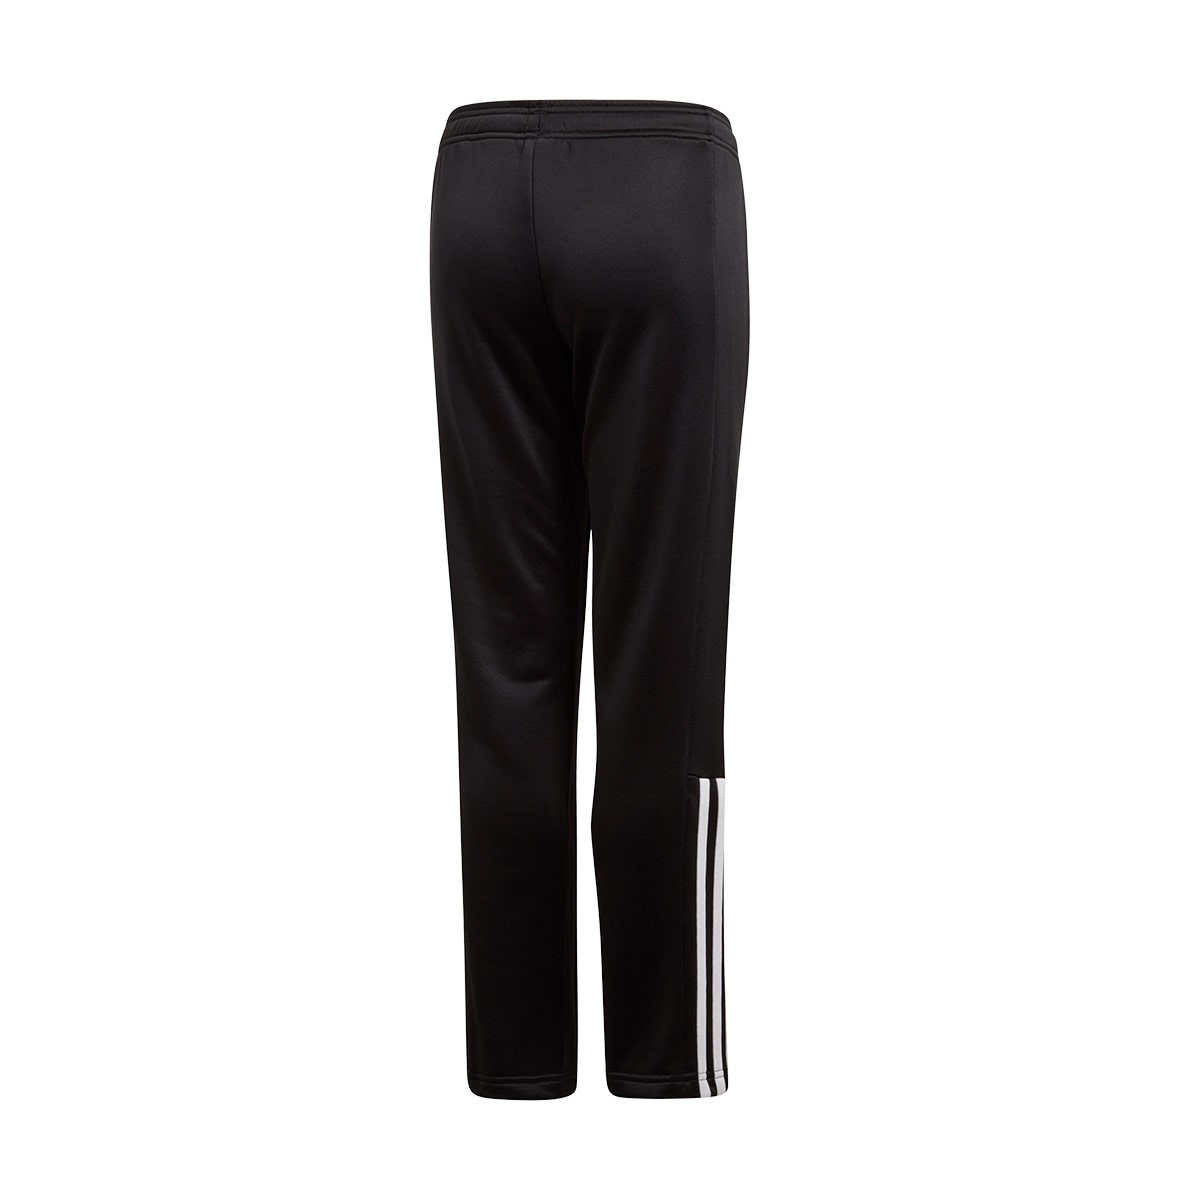 c8d4a73eda Long pants adidas Kids Regista 18 Polyester Black-White - Football ...